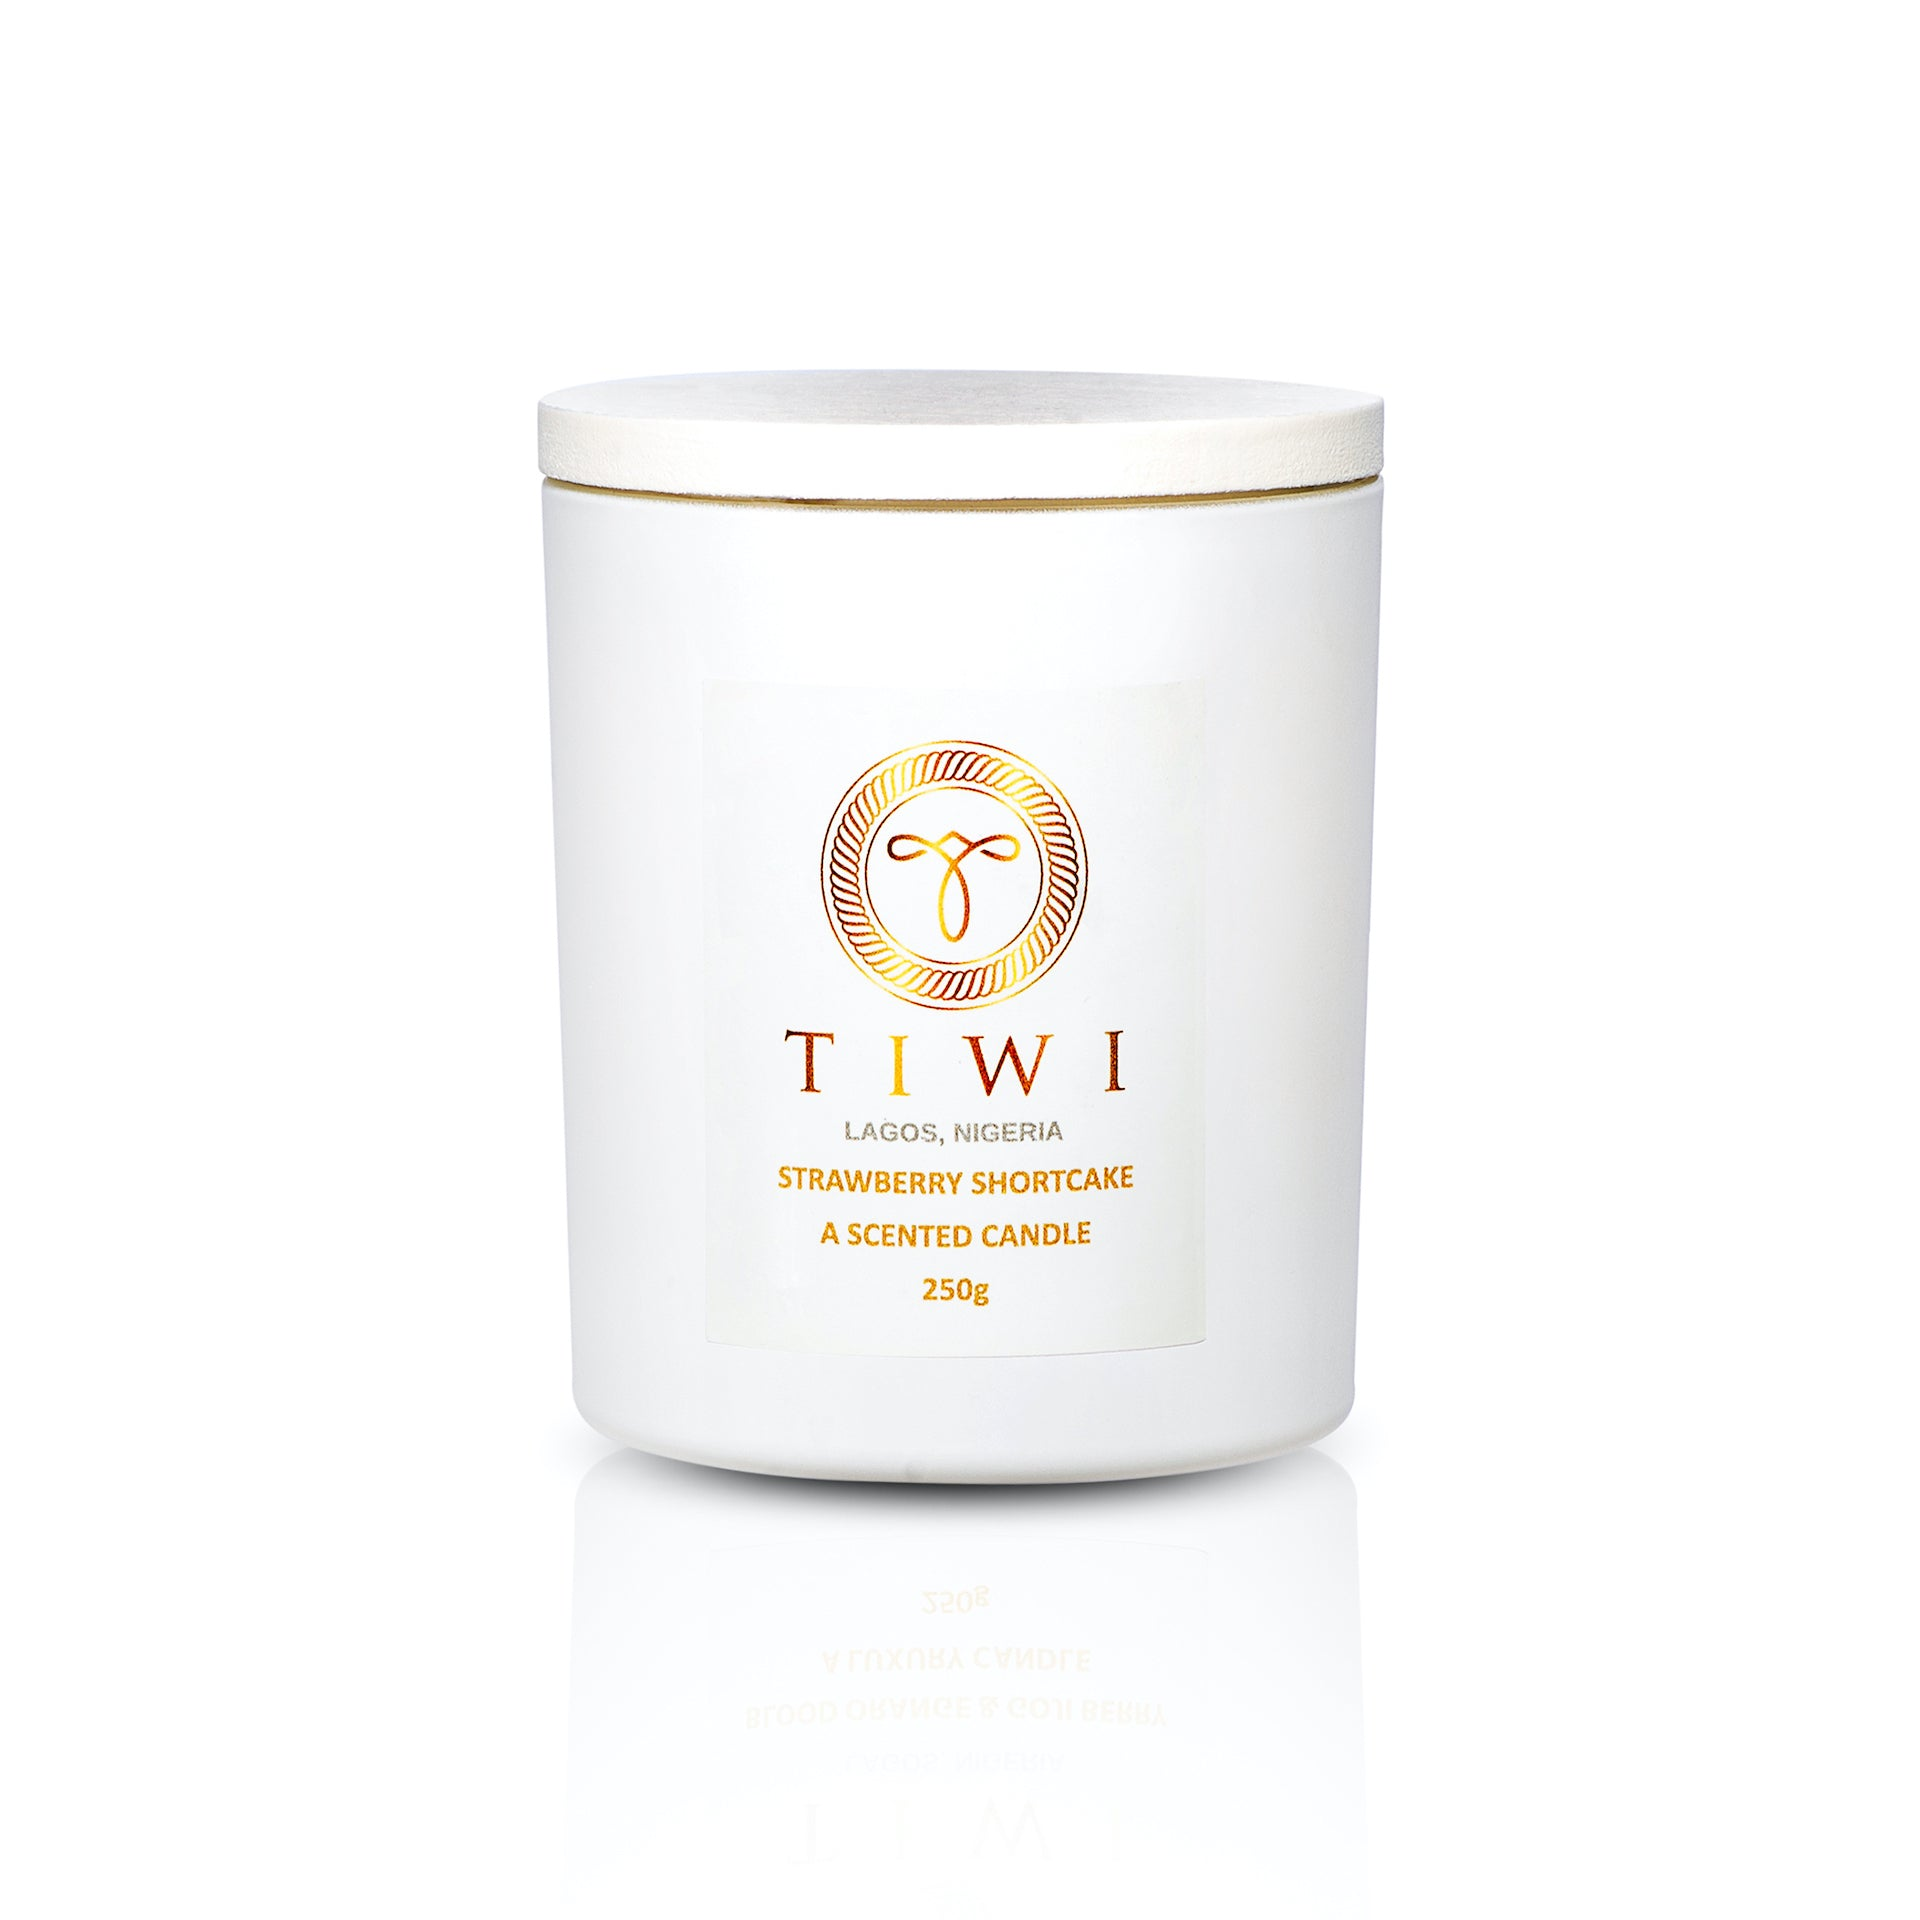 TIWI Strawberry Shortcake - A Scented Candle